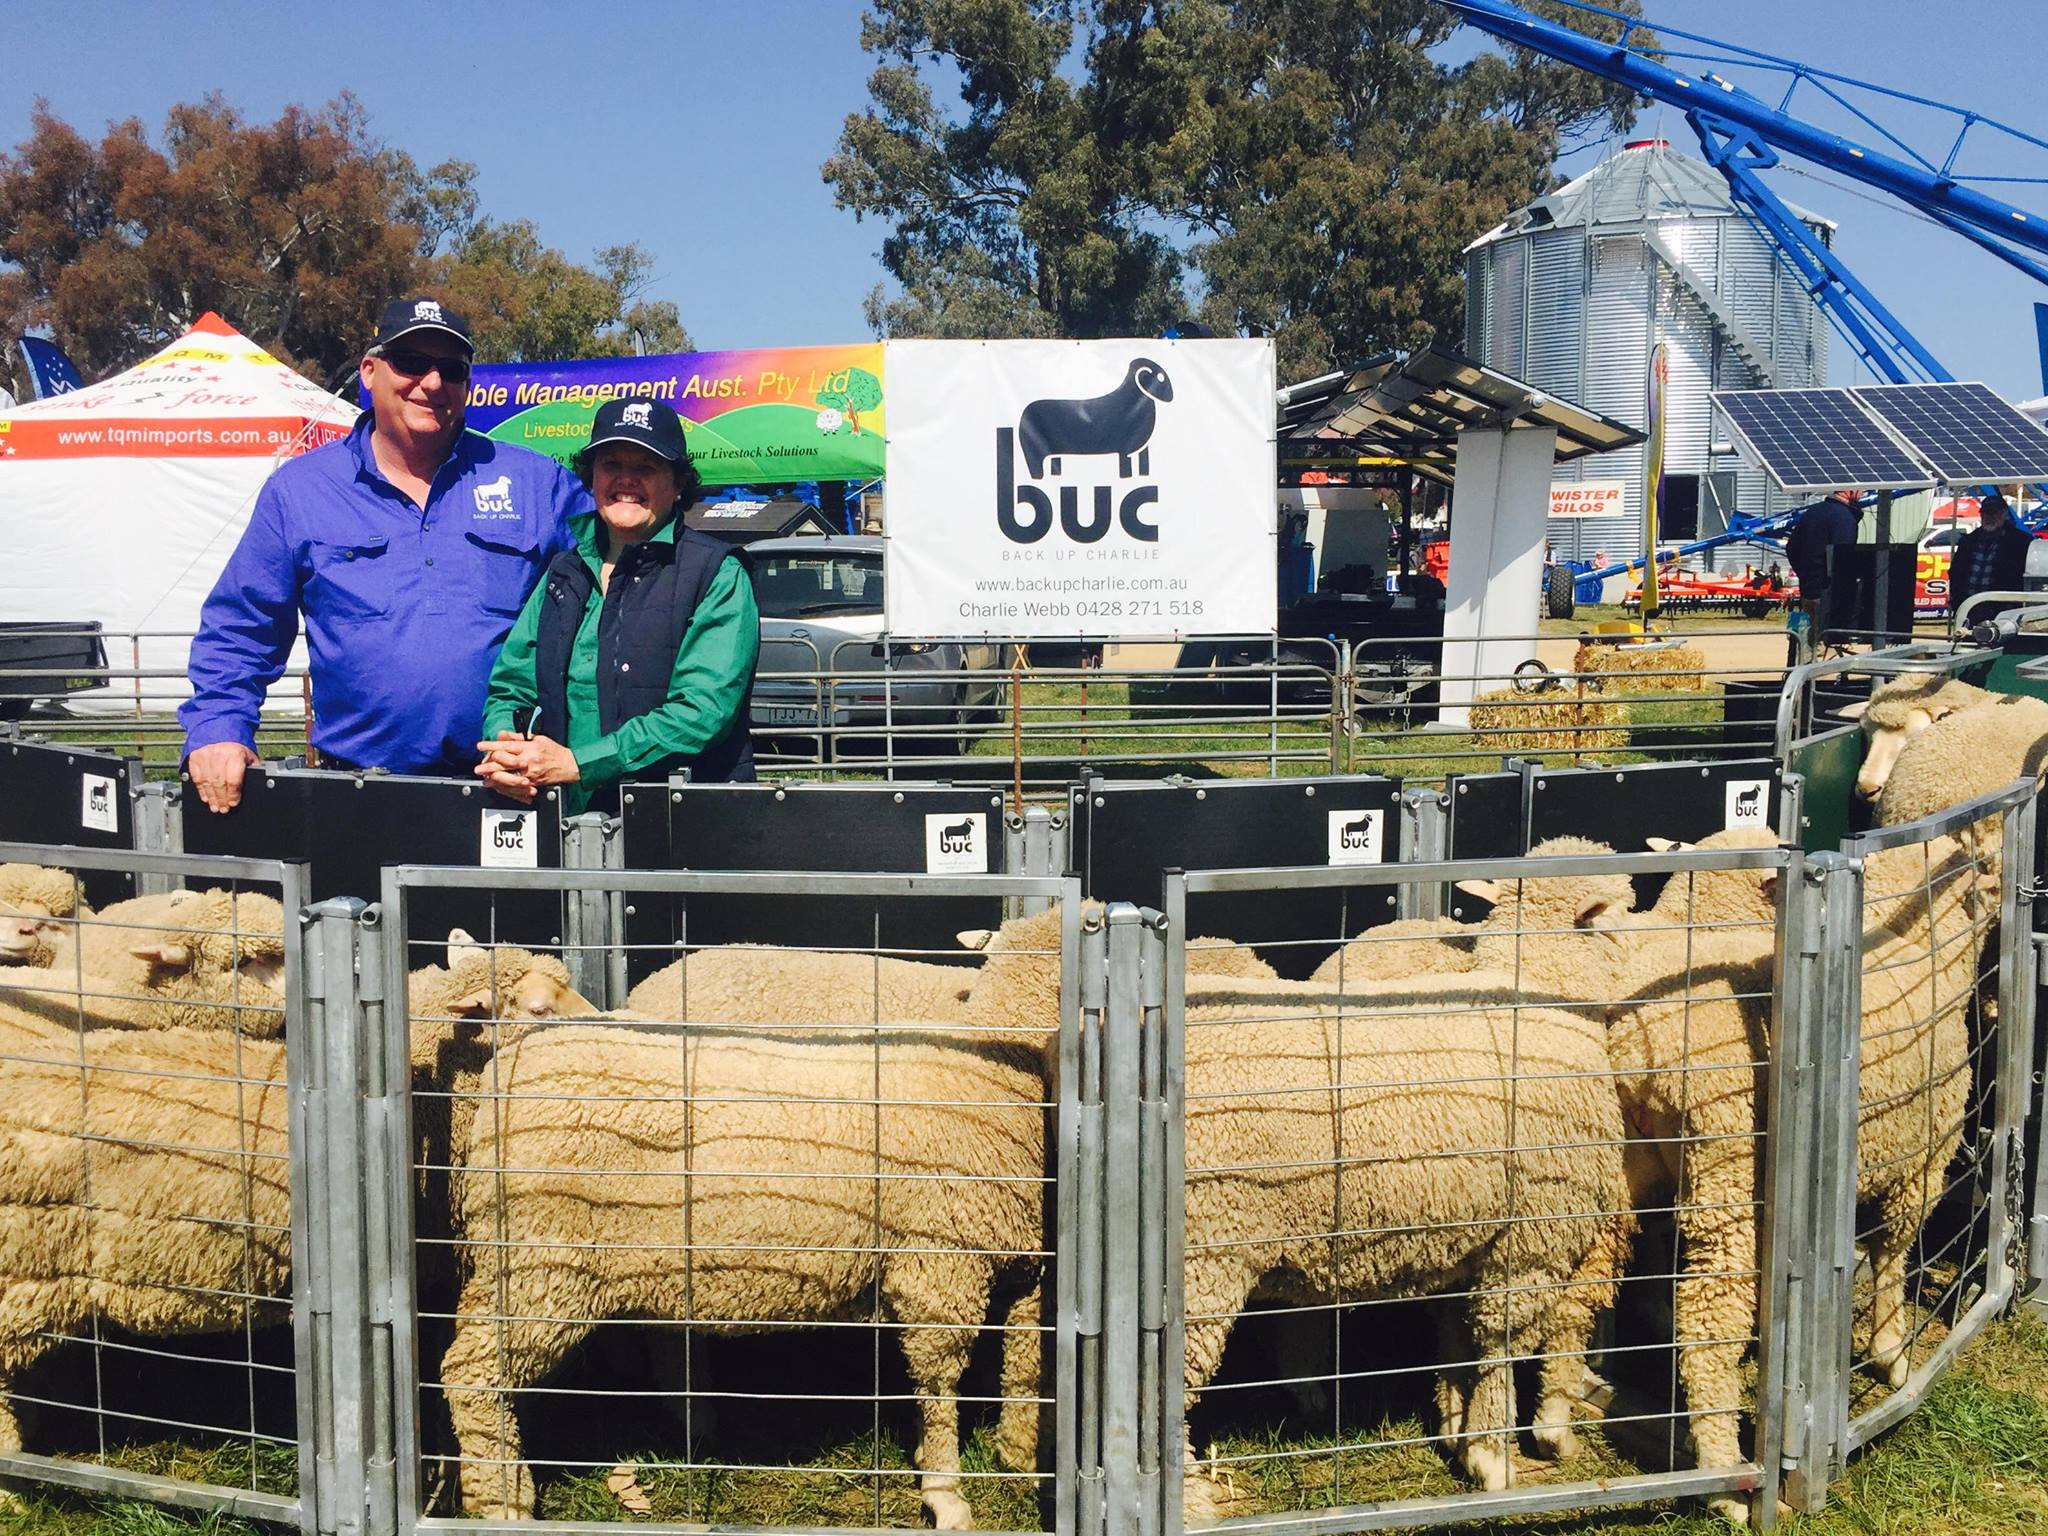 Charlie and Tana Webb after Back Up Charlie won the Machine of the Year Award at the 2016 Henty Field Days.